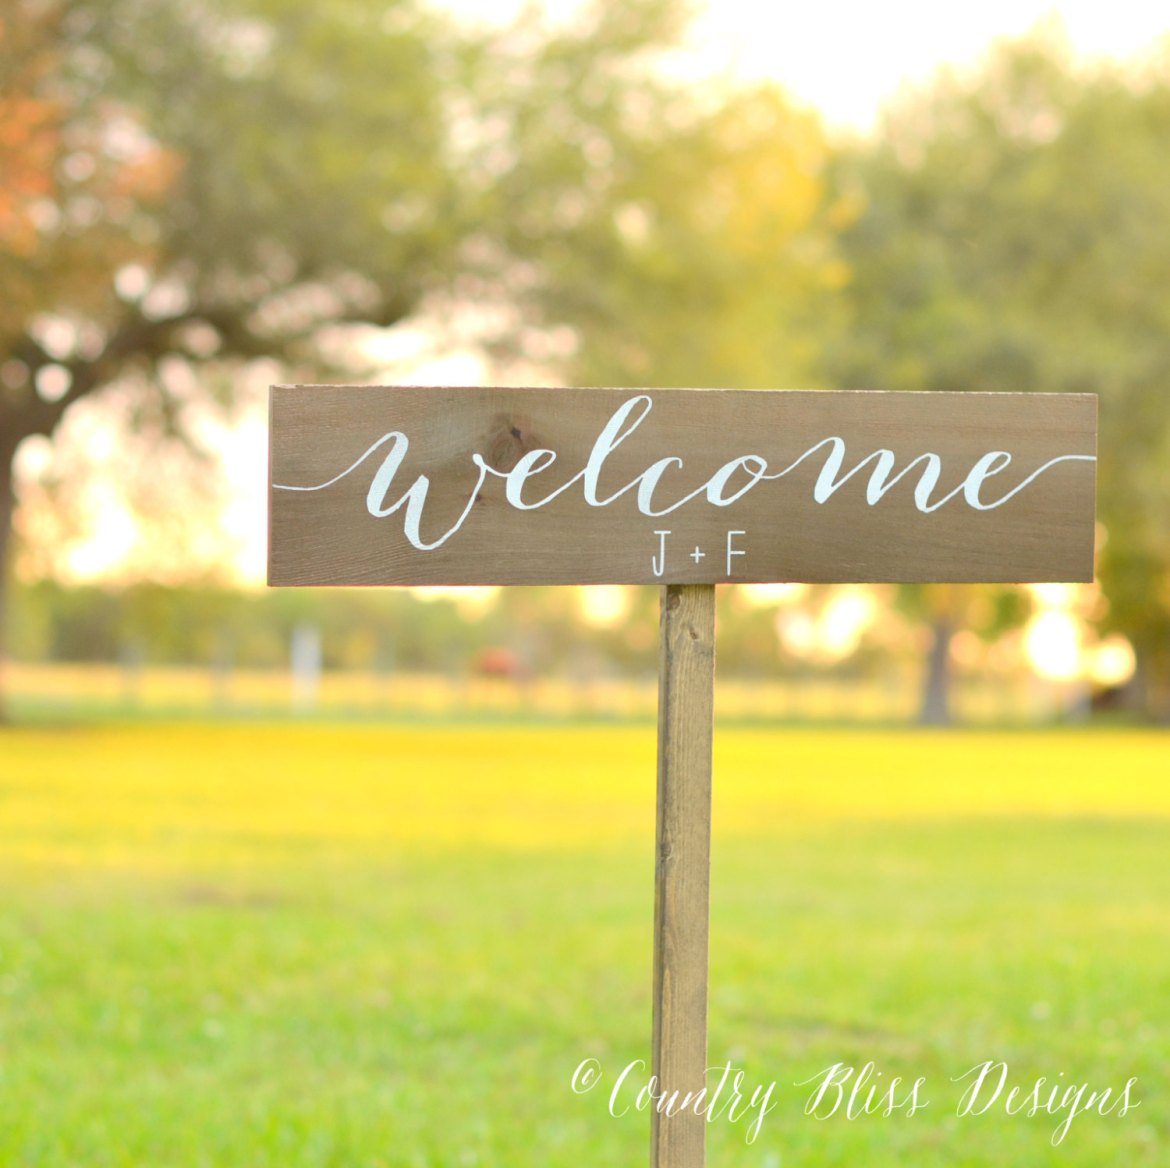 welcome initials sign for wedding by country bliss designs